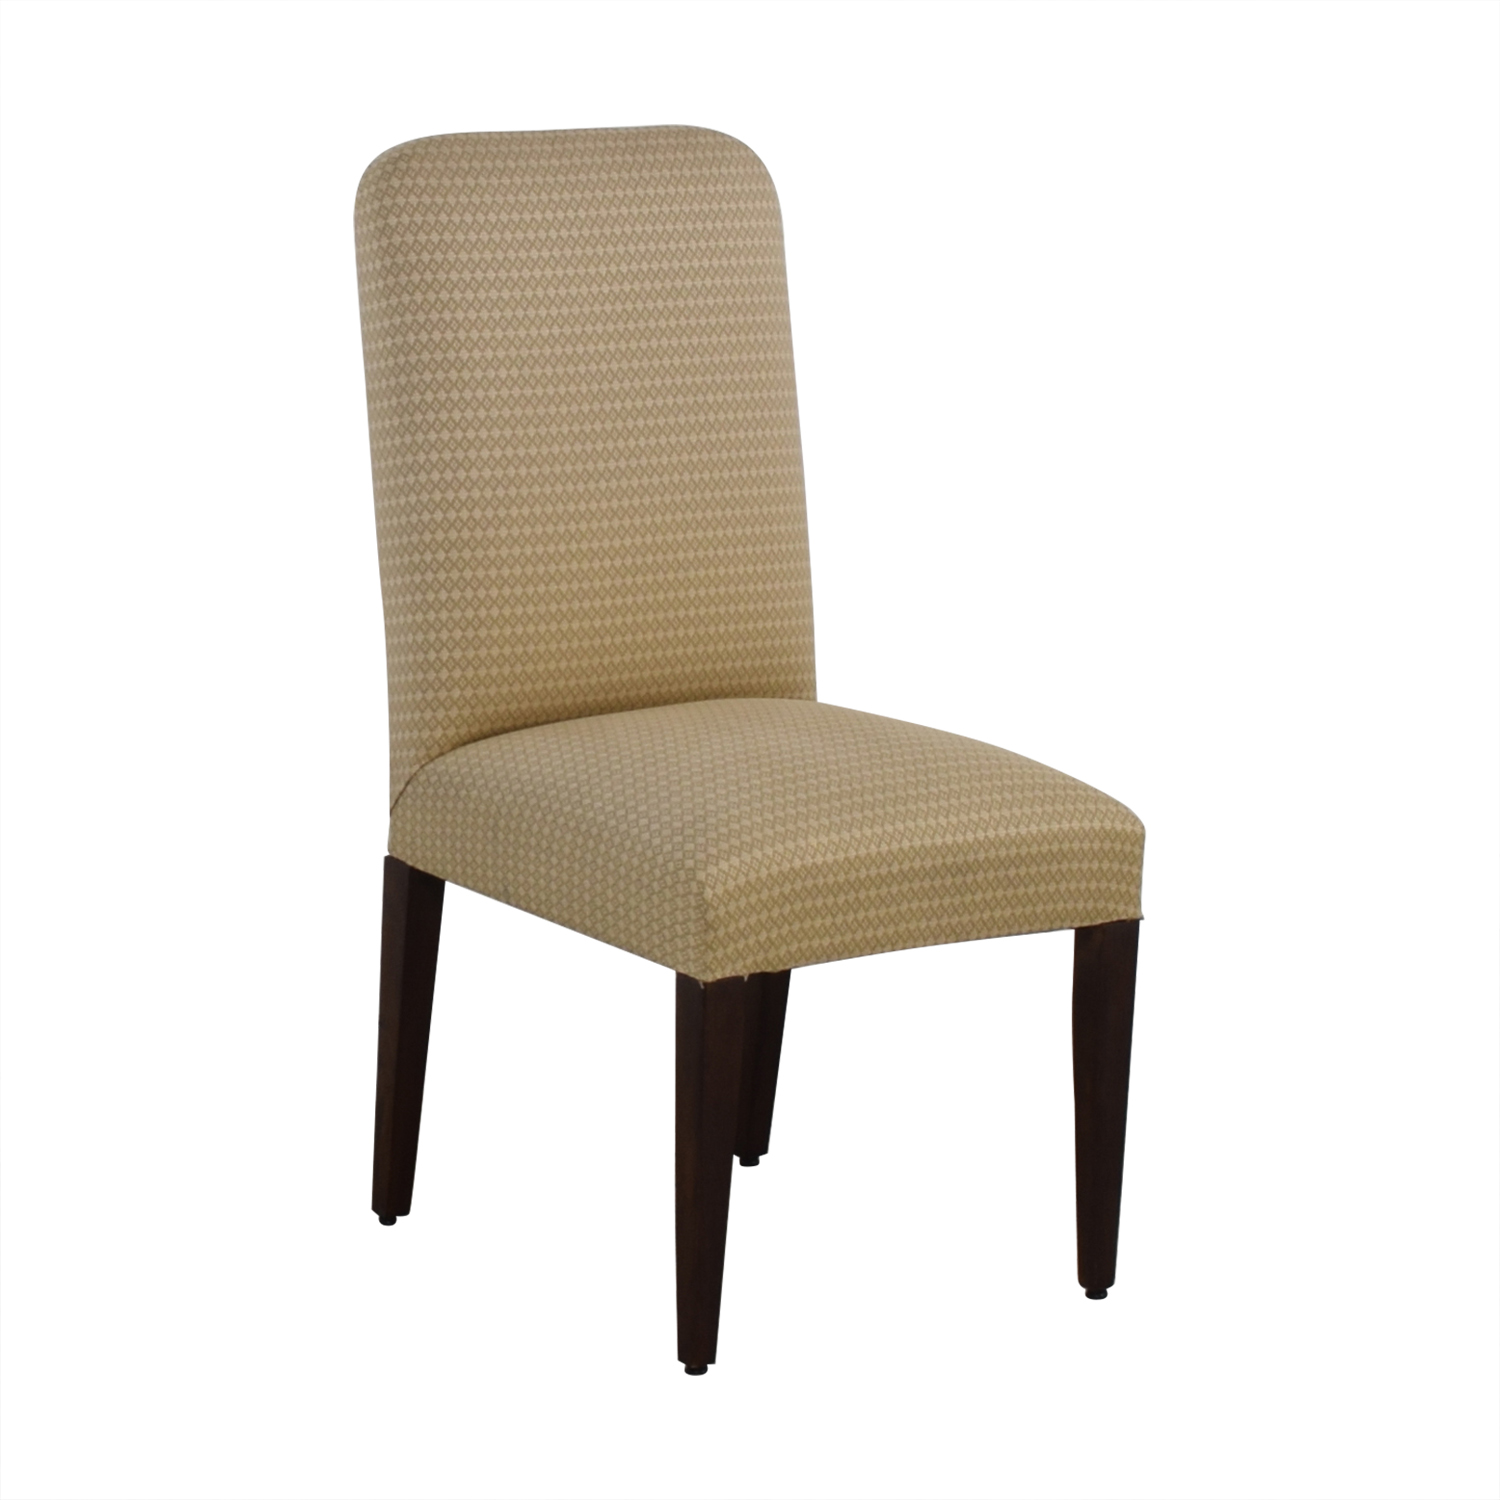 buy Furniture Masters Tan Accent Chair Furniture Masters